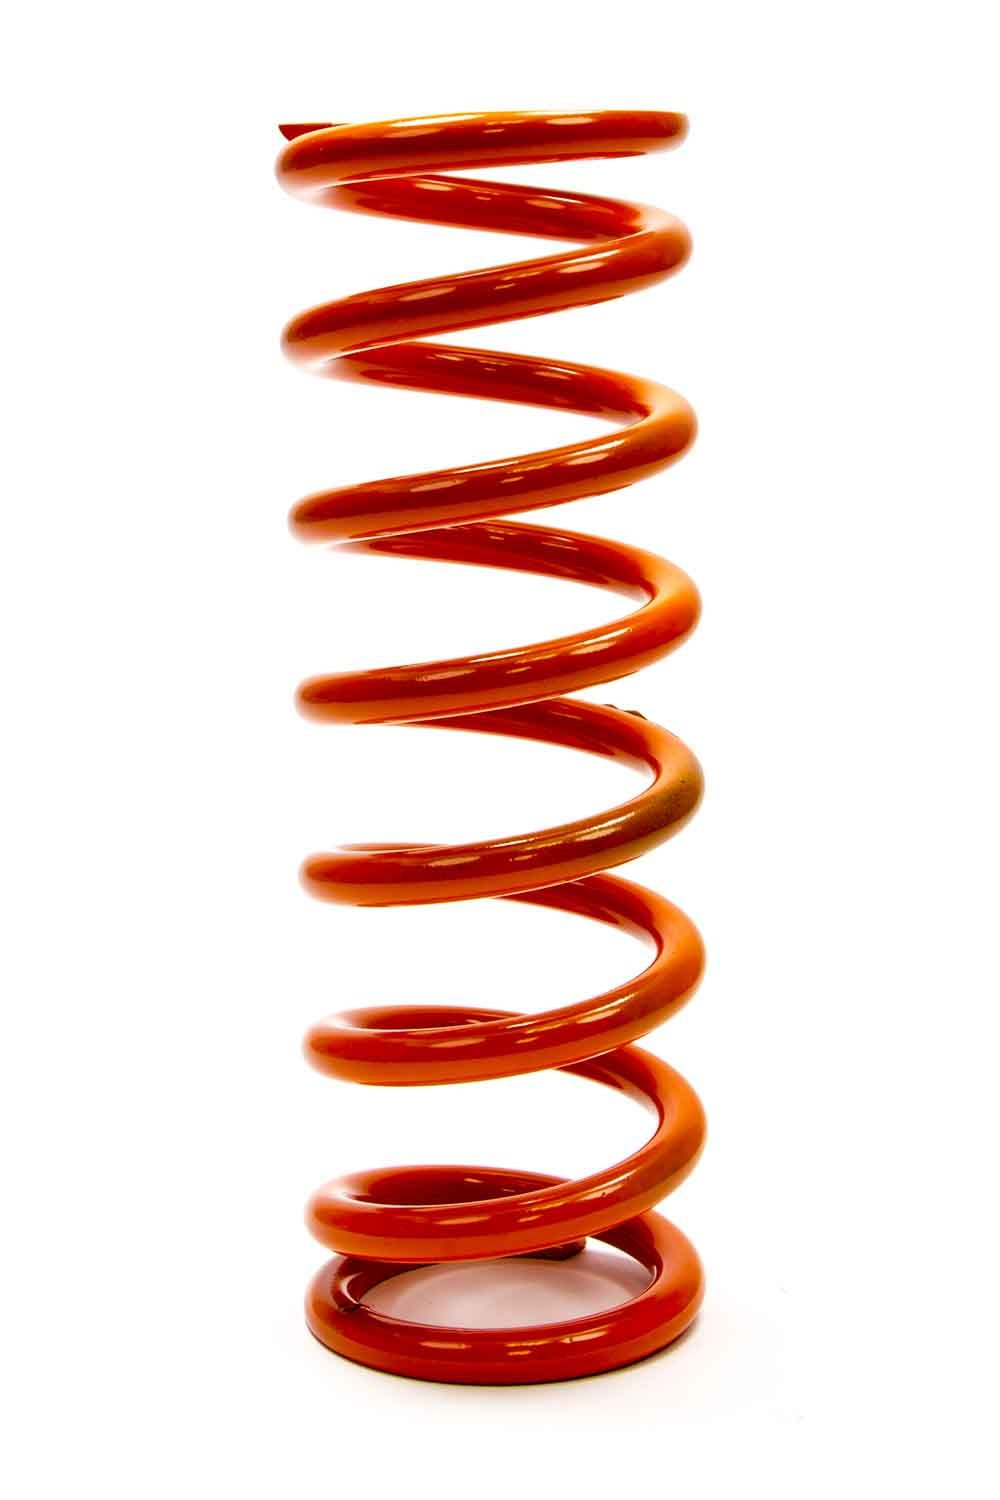 PAC Racing Springs PAC-10X2.5X175 Coil Spring, Coil-Over, 2.500 in ID, 10.000 in Length, 175 lb/in Spring Rate, Orange Powder Coat, Each